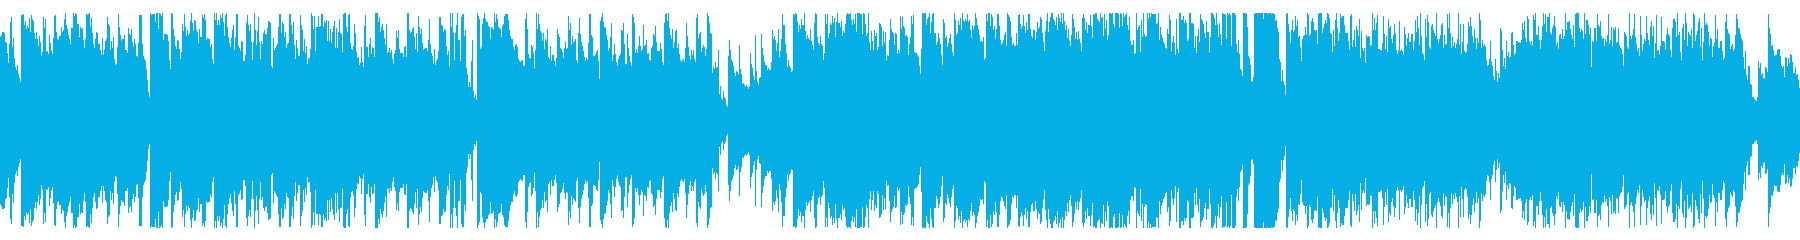 A suspicious waltz in the image of a demonic party's reproduced waveform